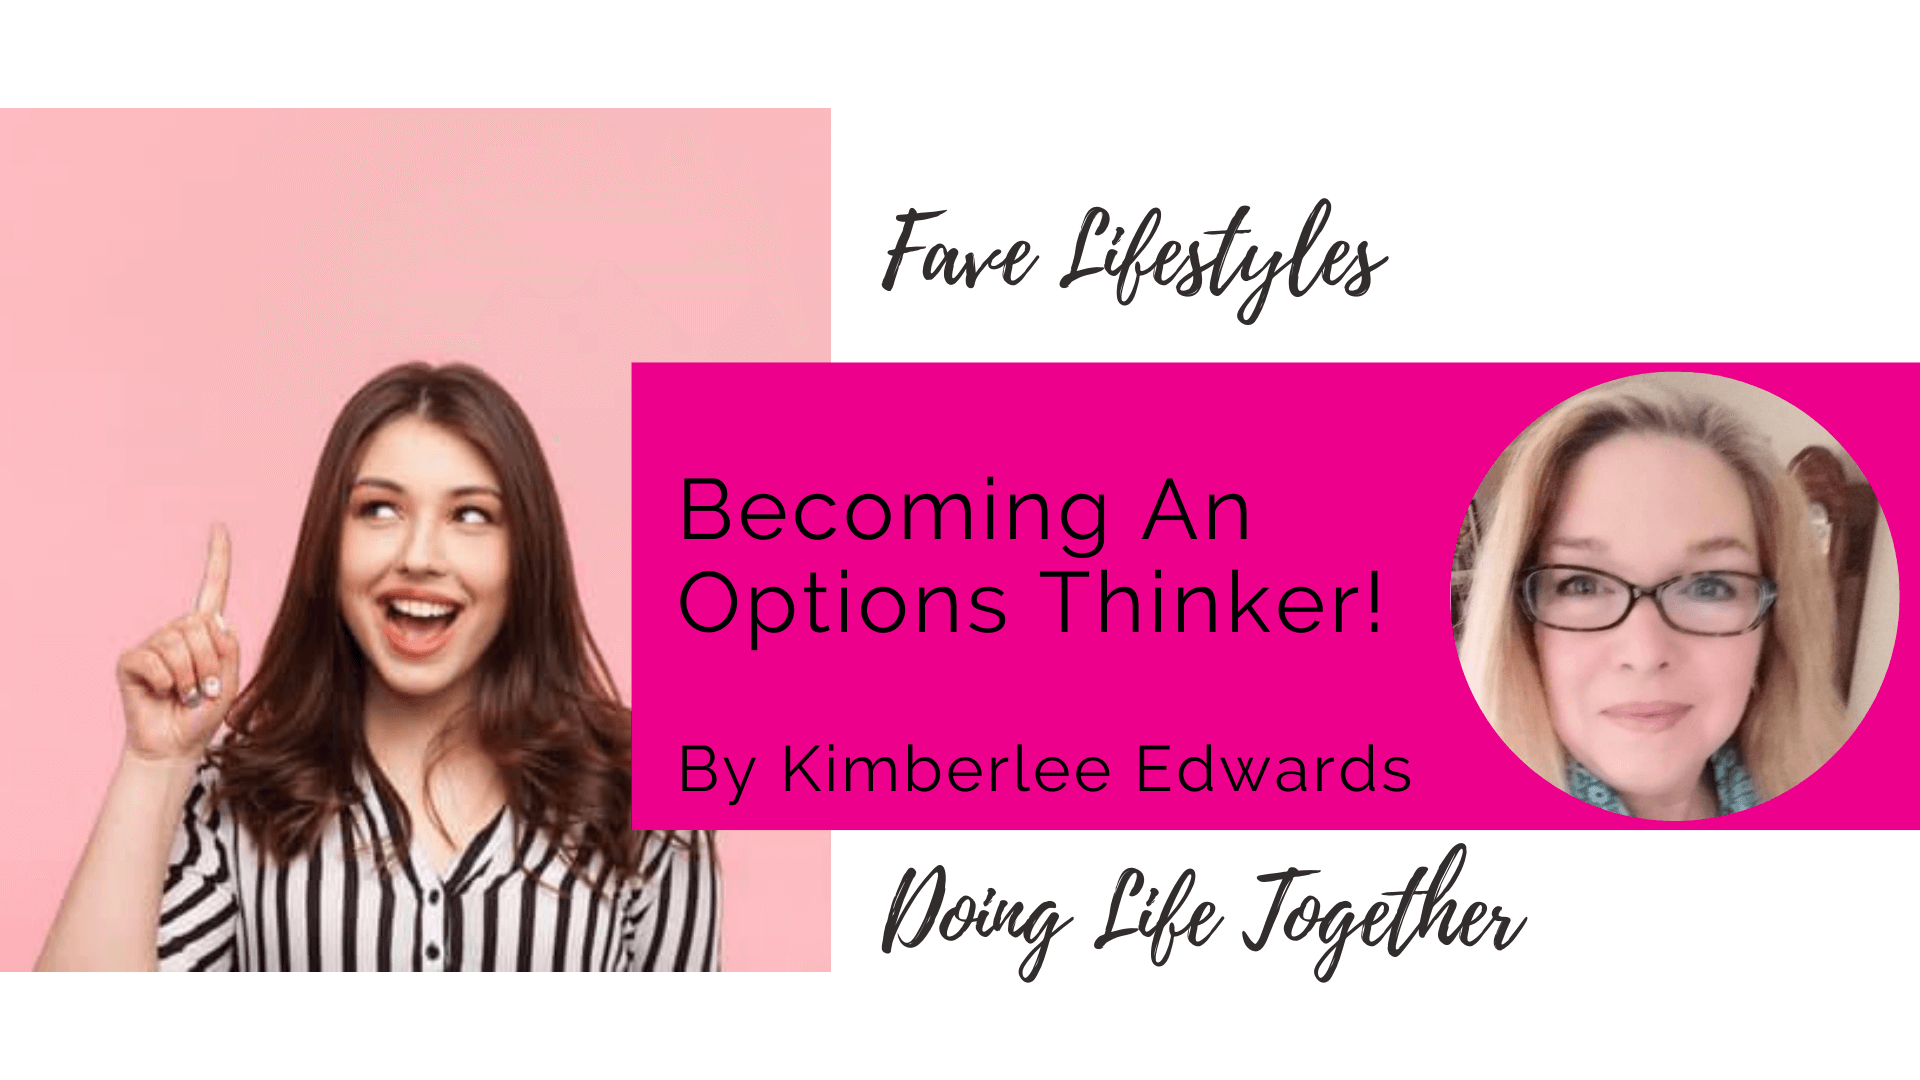 Becoming An Options Thinker!